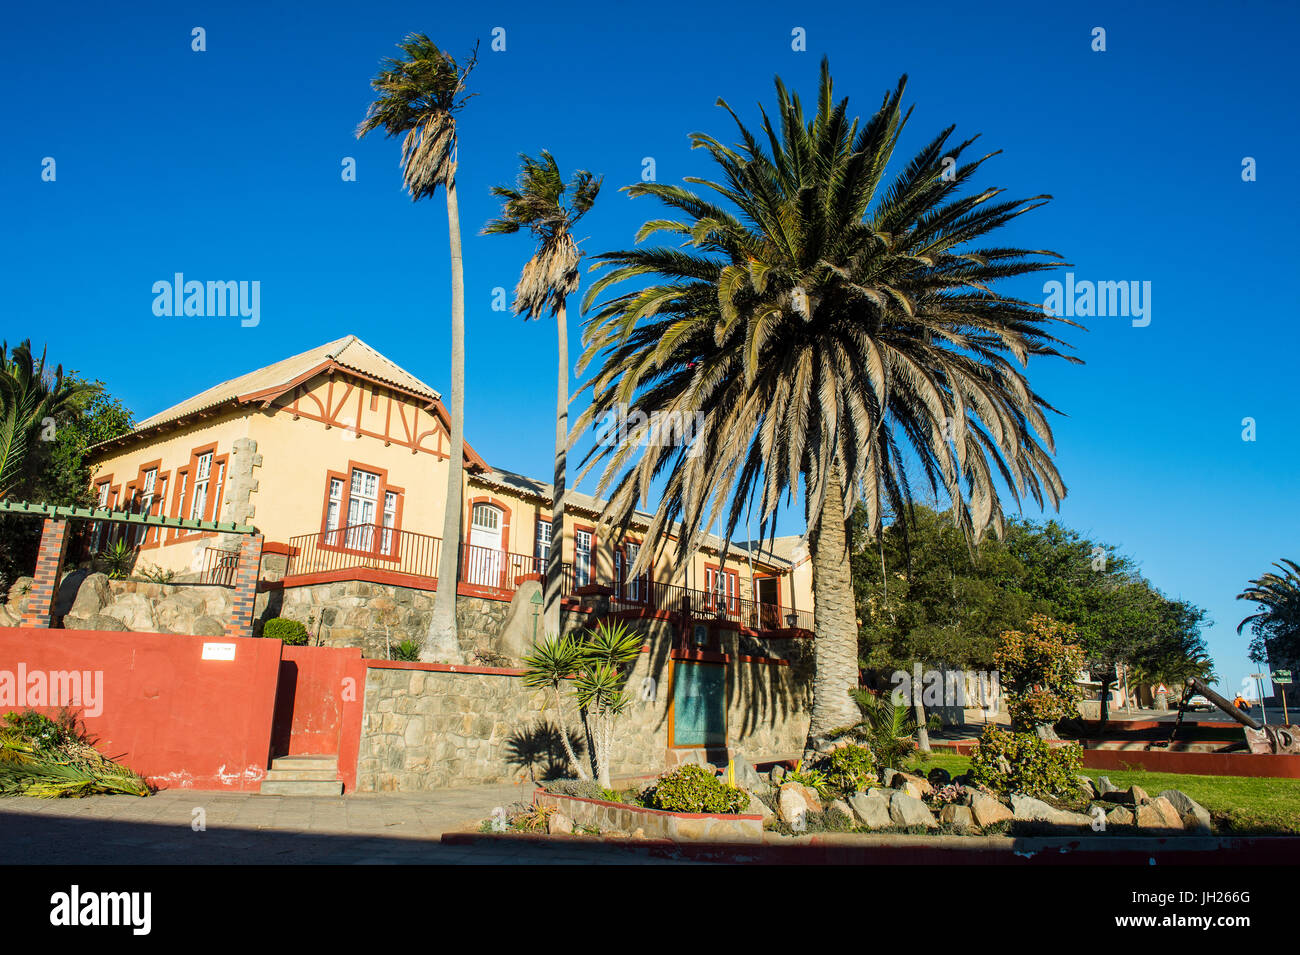 Old colonial German houses in Luderitz, Namibia, Africa - Stock Image